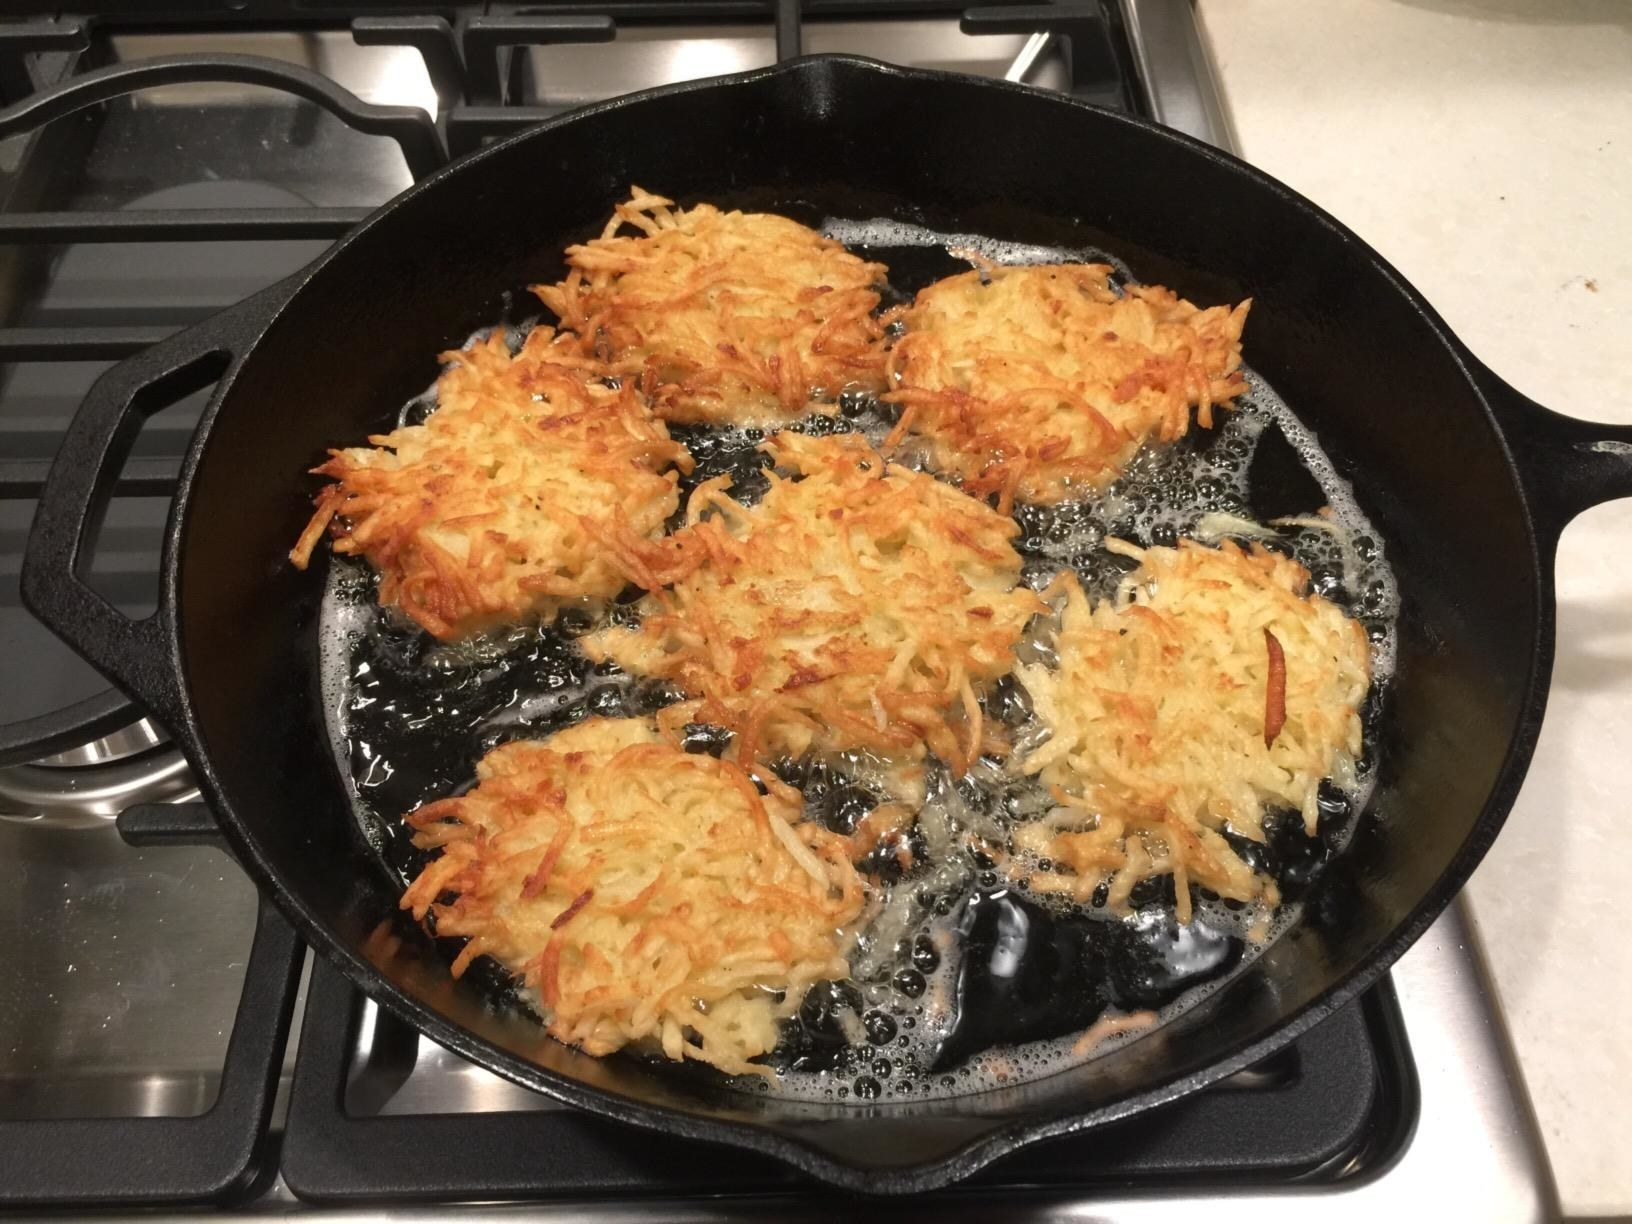 Potato latkes frying in oil in a cast iron skillet on the stove.